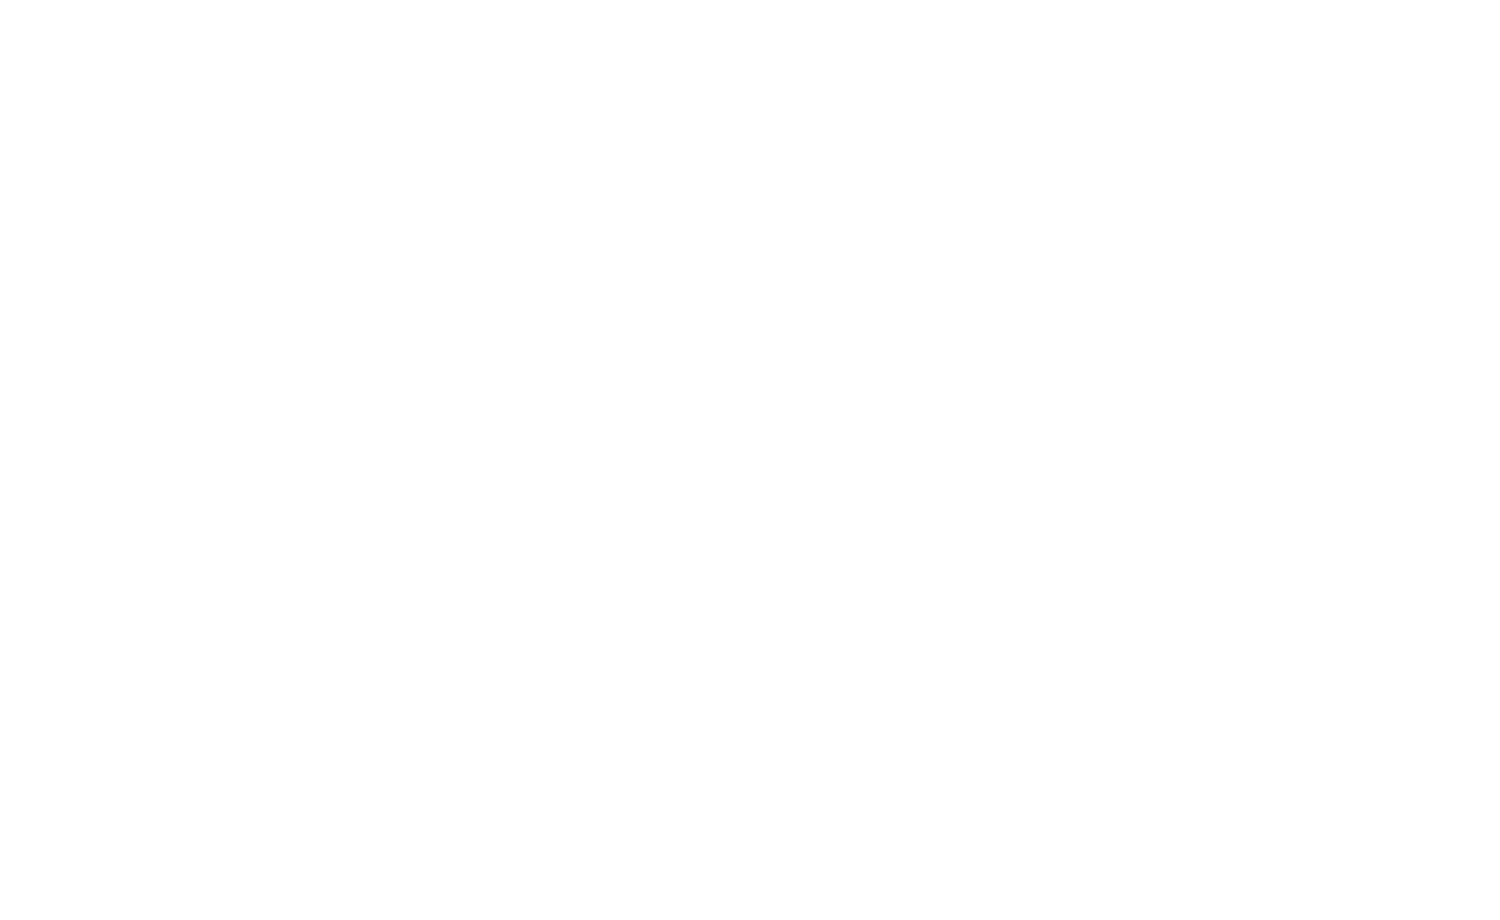 Dual Citizen